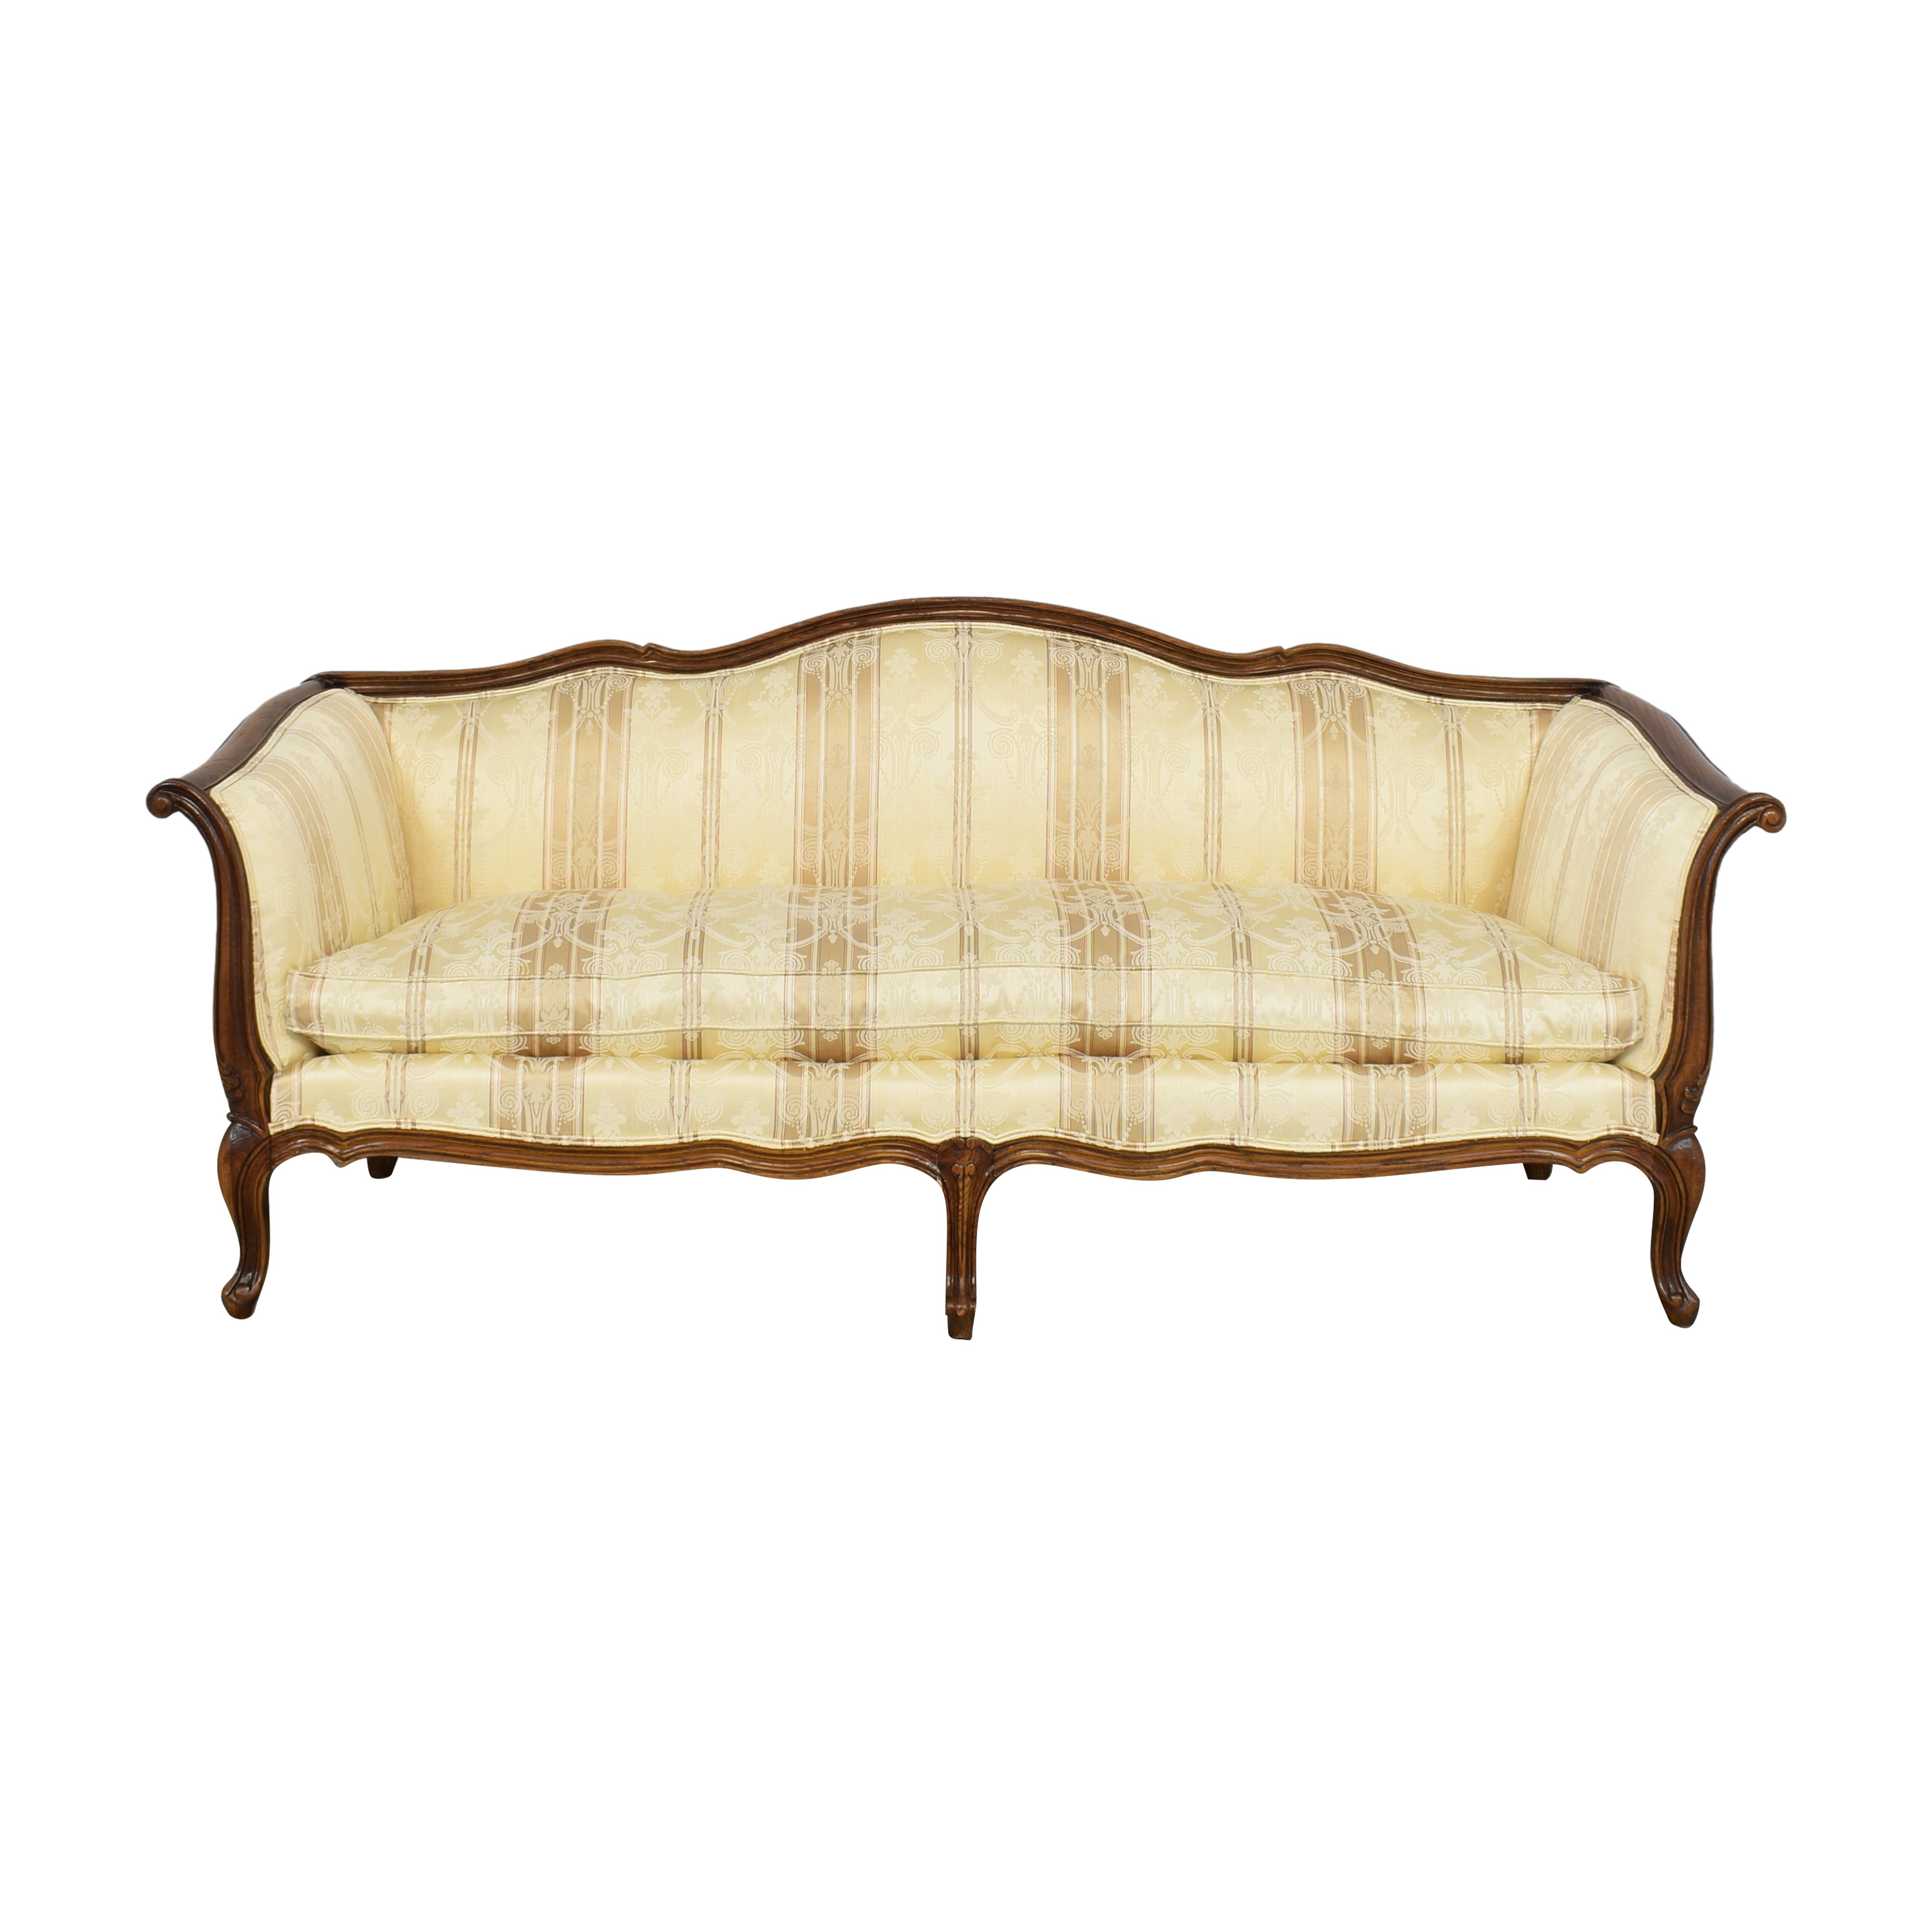 Century Furniture Century Furniture Sofa with Carved Legs and Trim pa